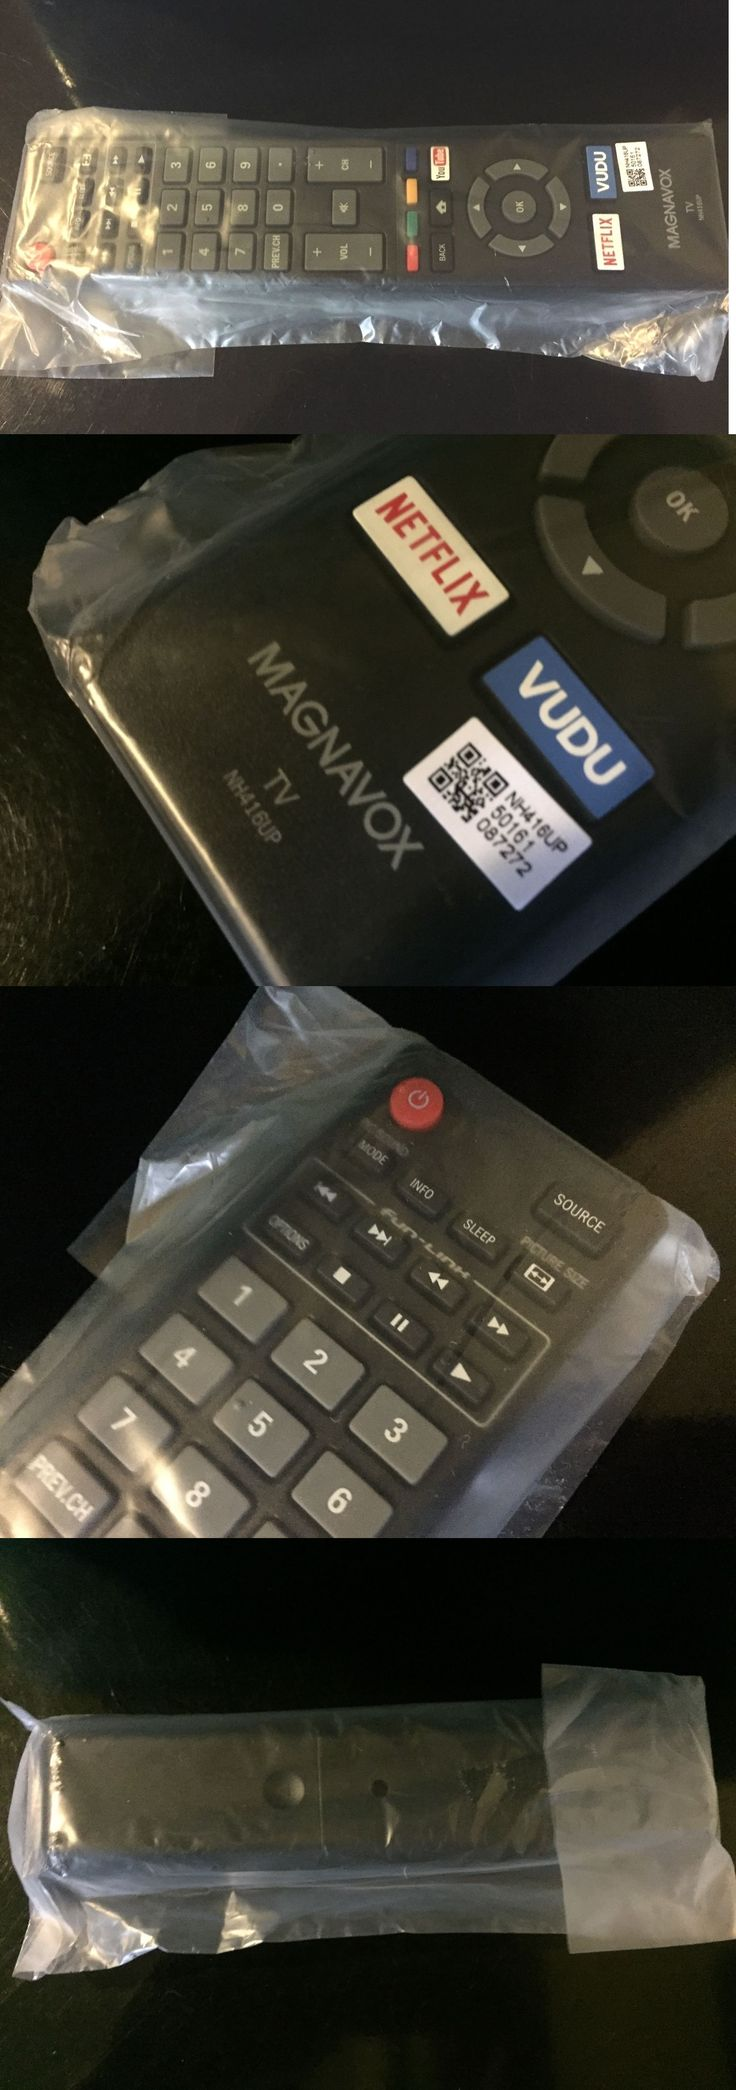 Remote Controls: Brand New Magnavox Led Smart Tv Remote Control - Model Nh416up BUY IT NOW ONLY: $42.5